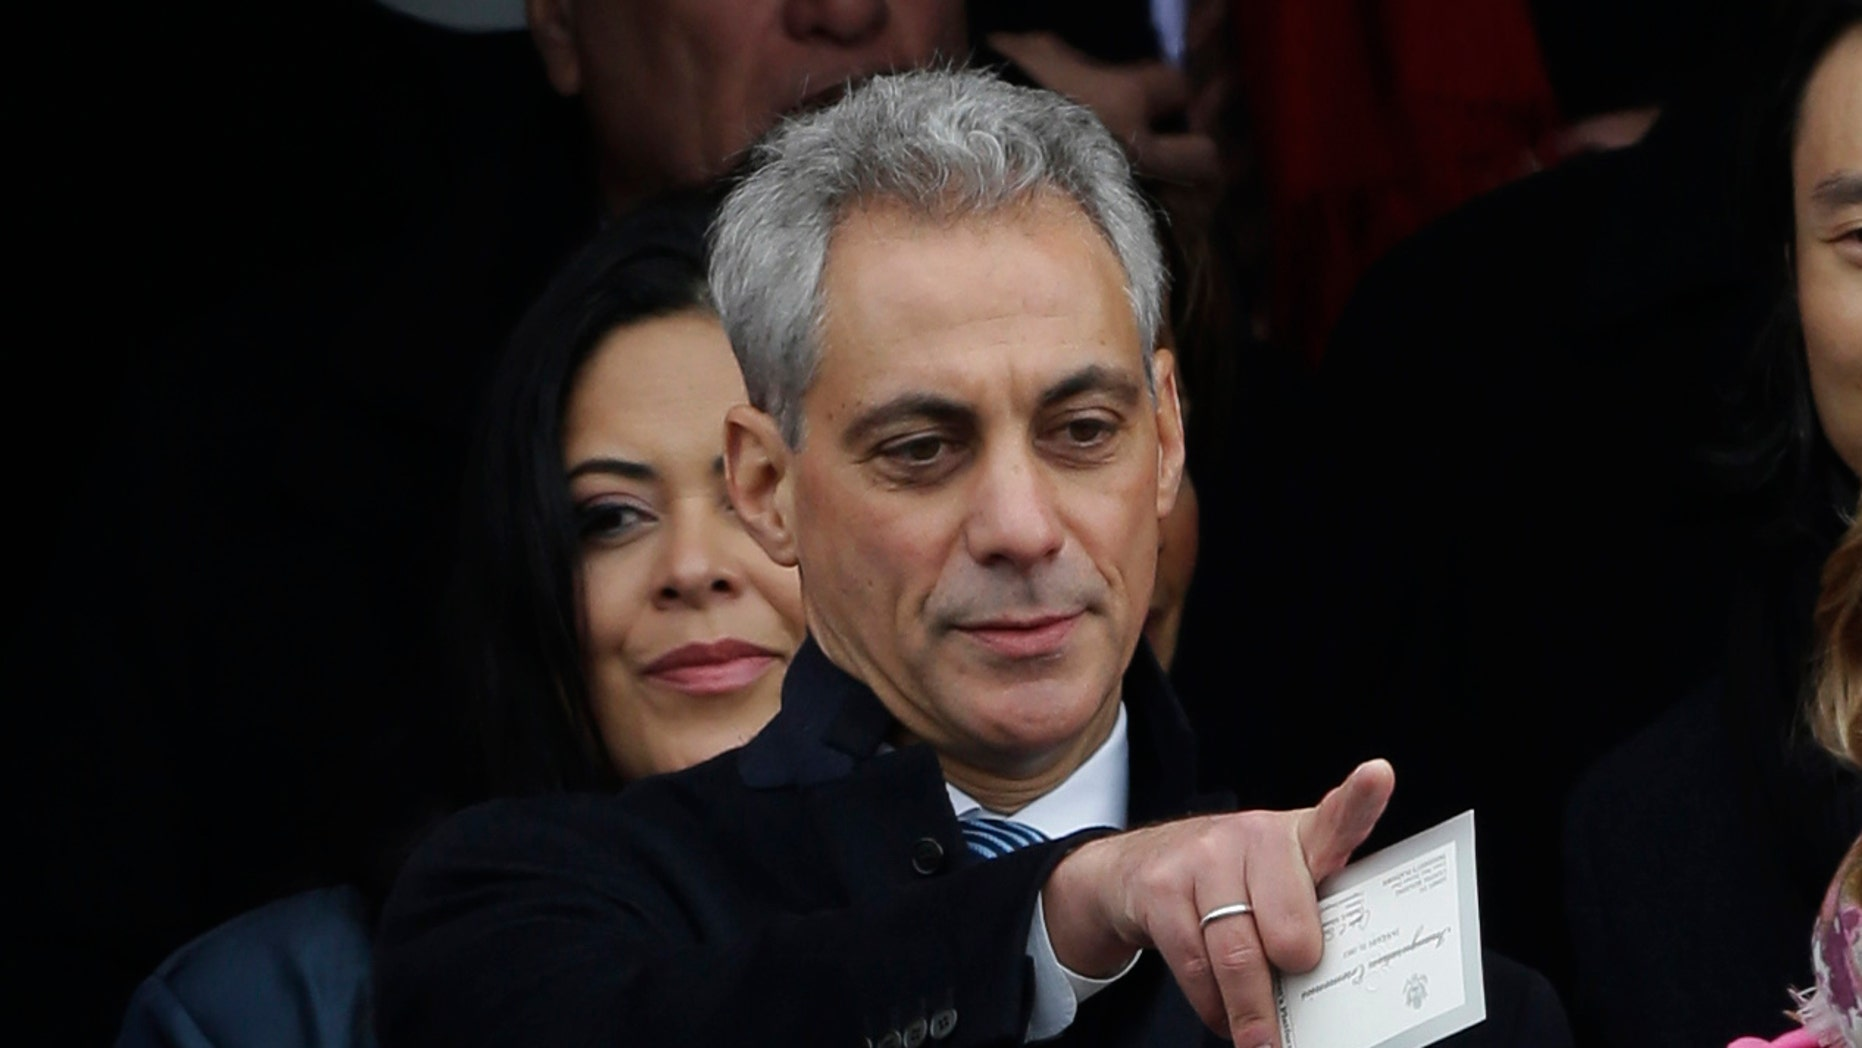 FILE:  Jan. 21, 2013: Chicago Mayor Rahm Emanuel at the swearing-in of President Obama at the U.S. Capitol in Washington, D.C.